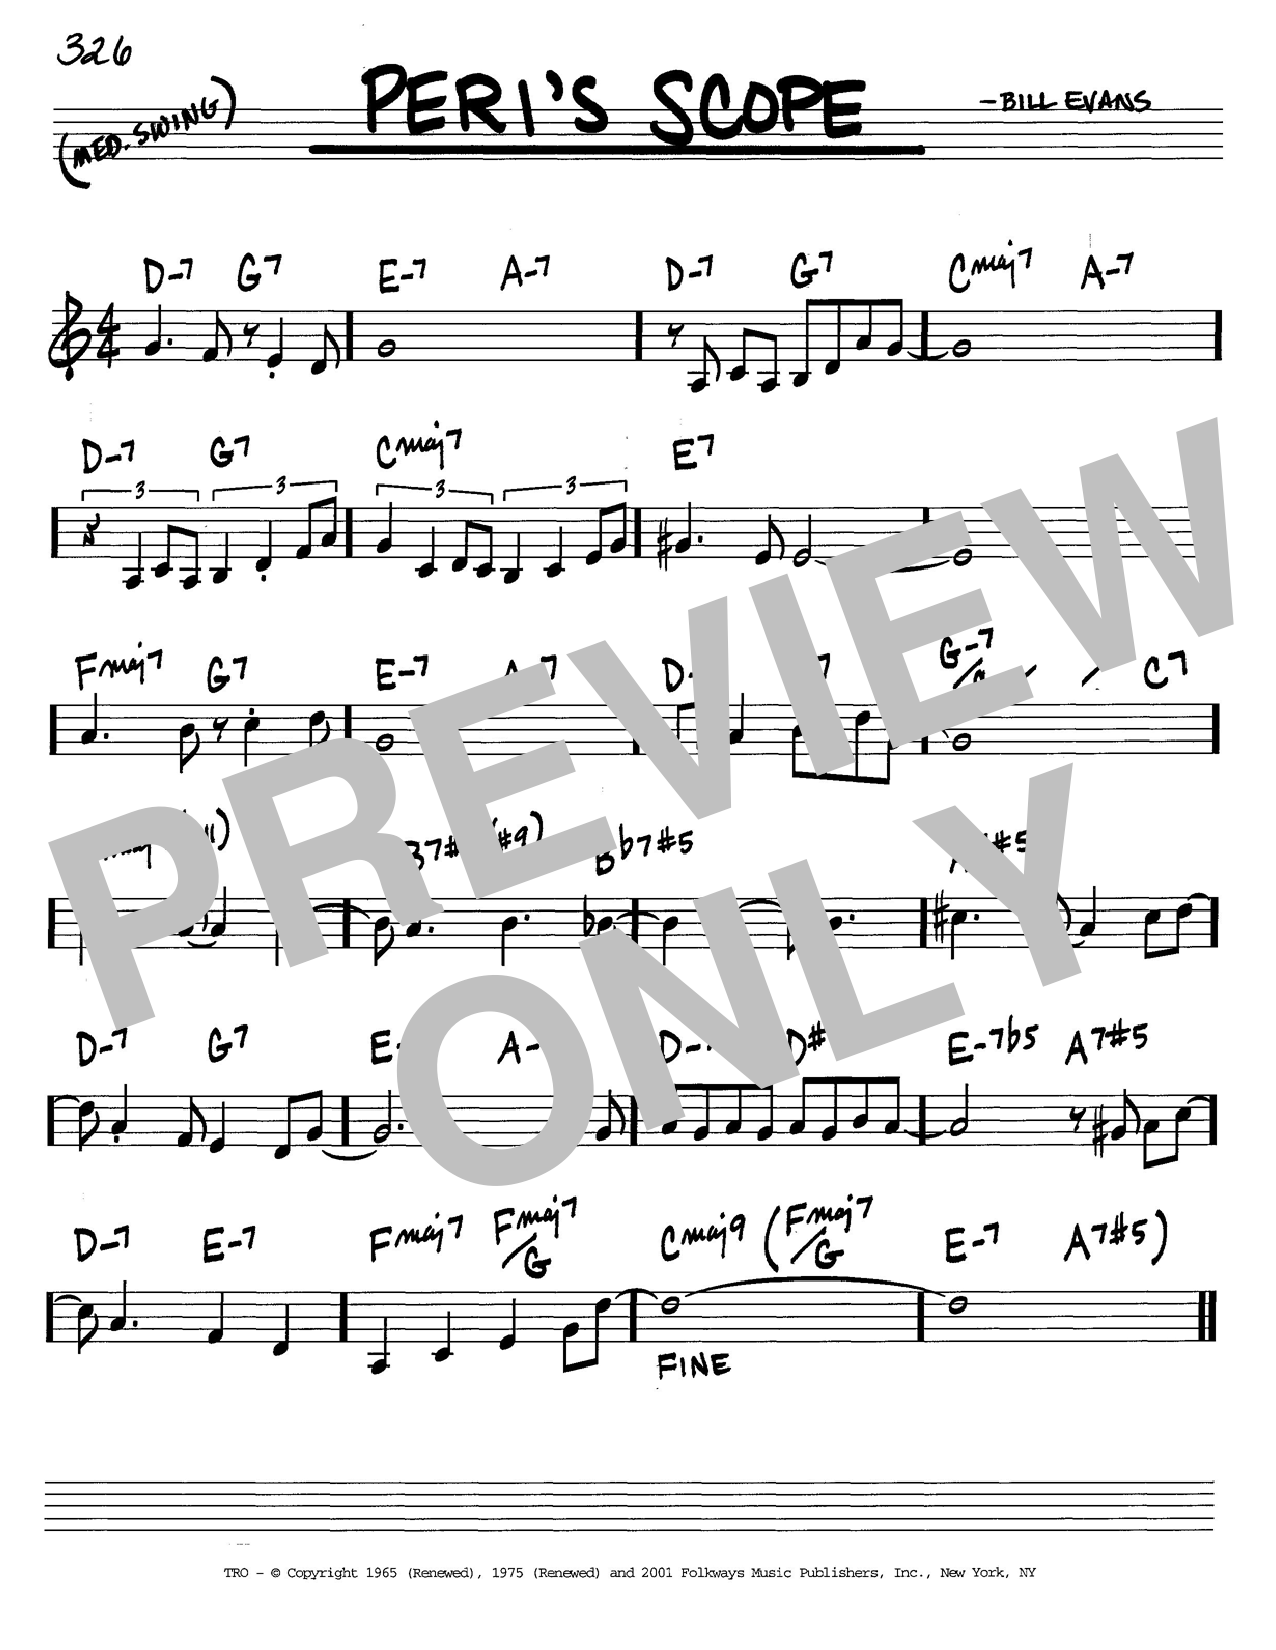 Bill Evans Peri's Scope sheet music notes and chords. Download Printable PDF.